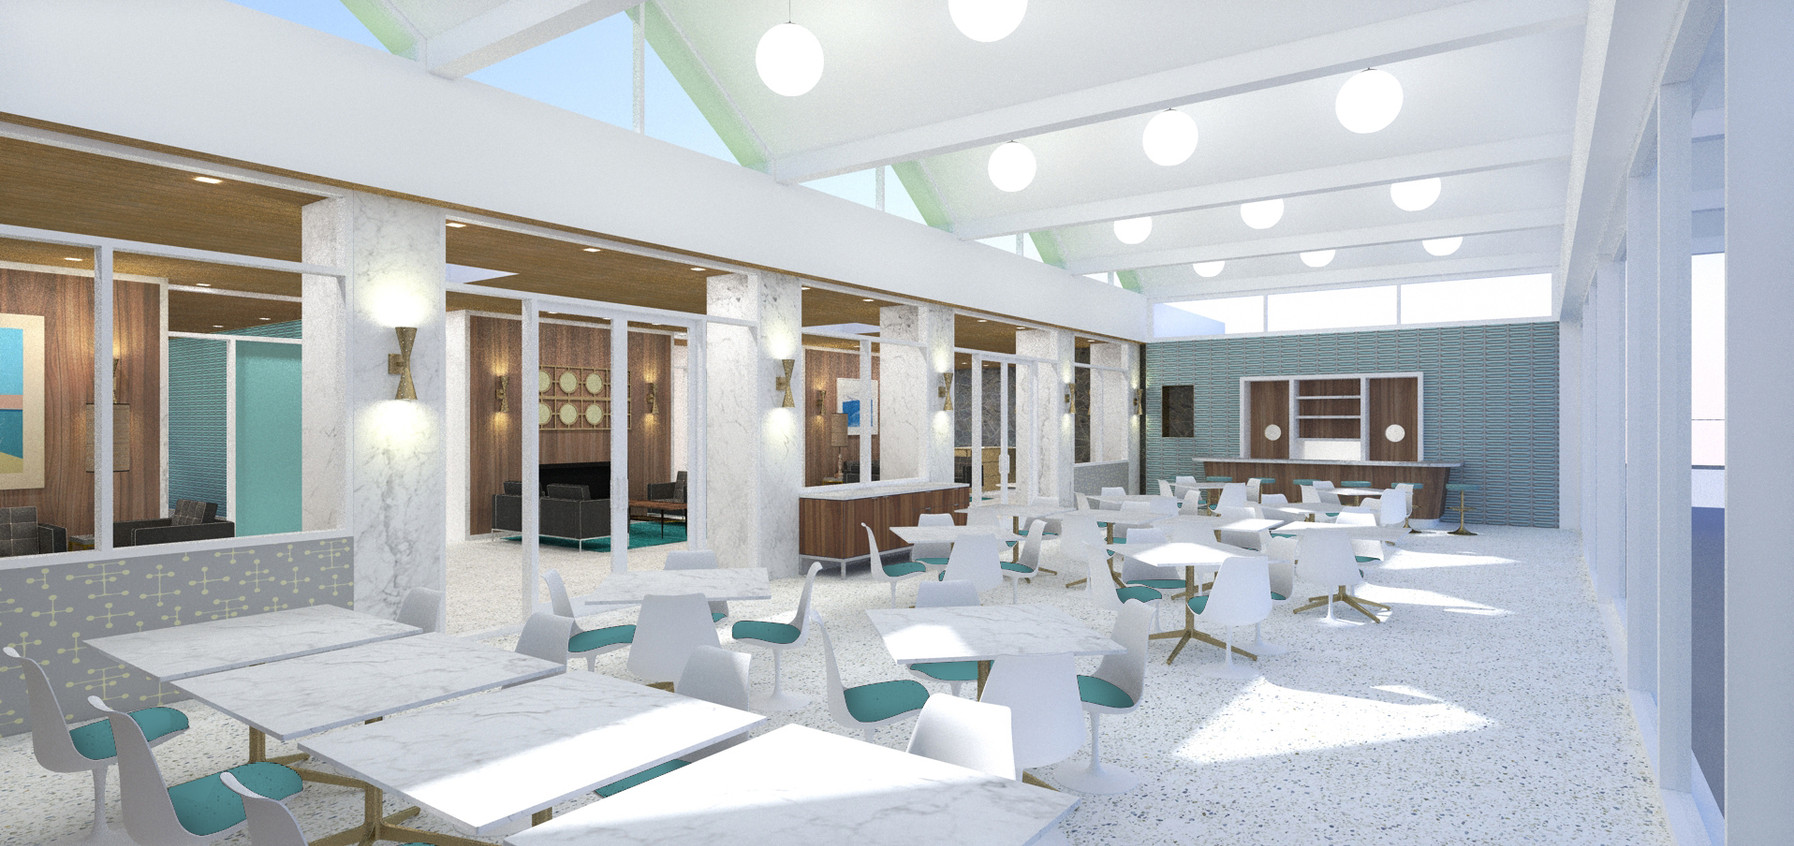 skyview - cafe interior perspective (tur